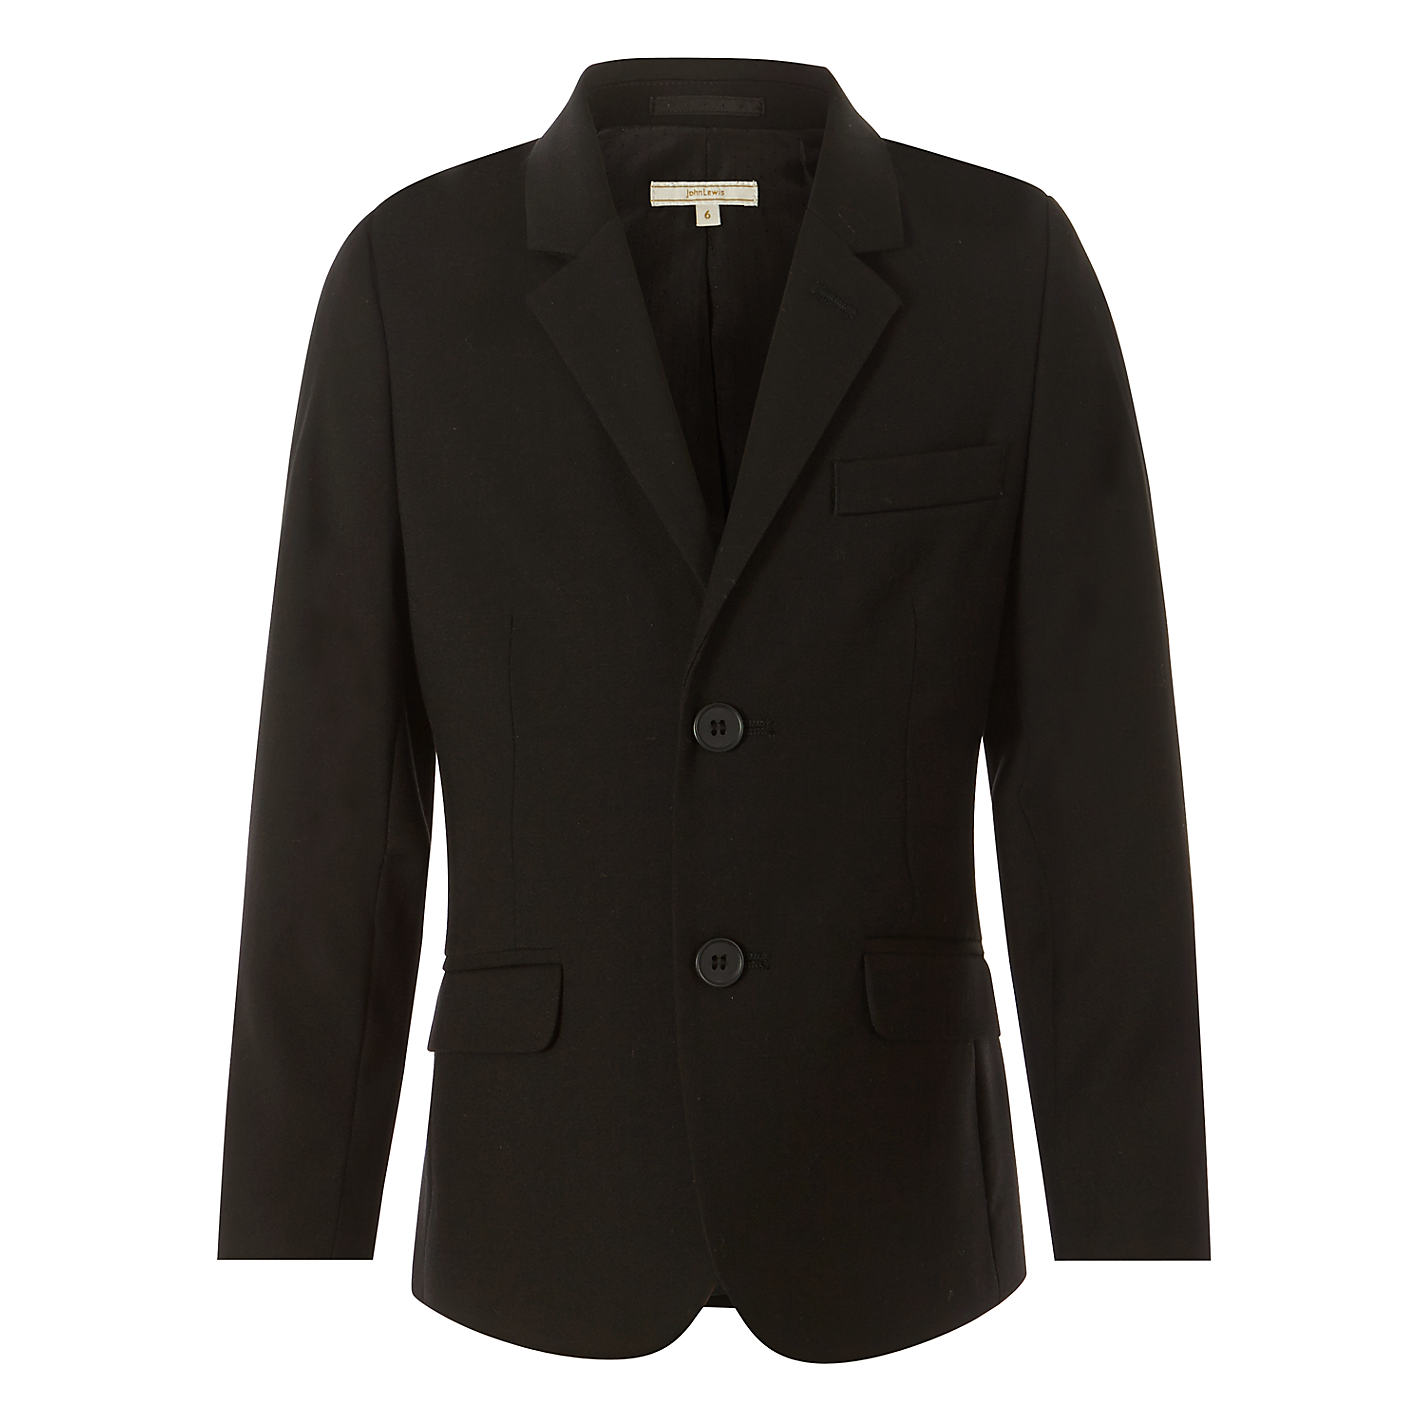 Buy John Lewis Heirloom Collection Boys' Suit Jacket, Black | John ...